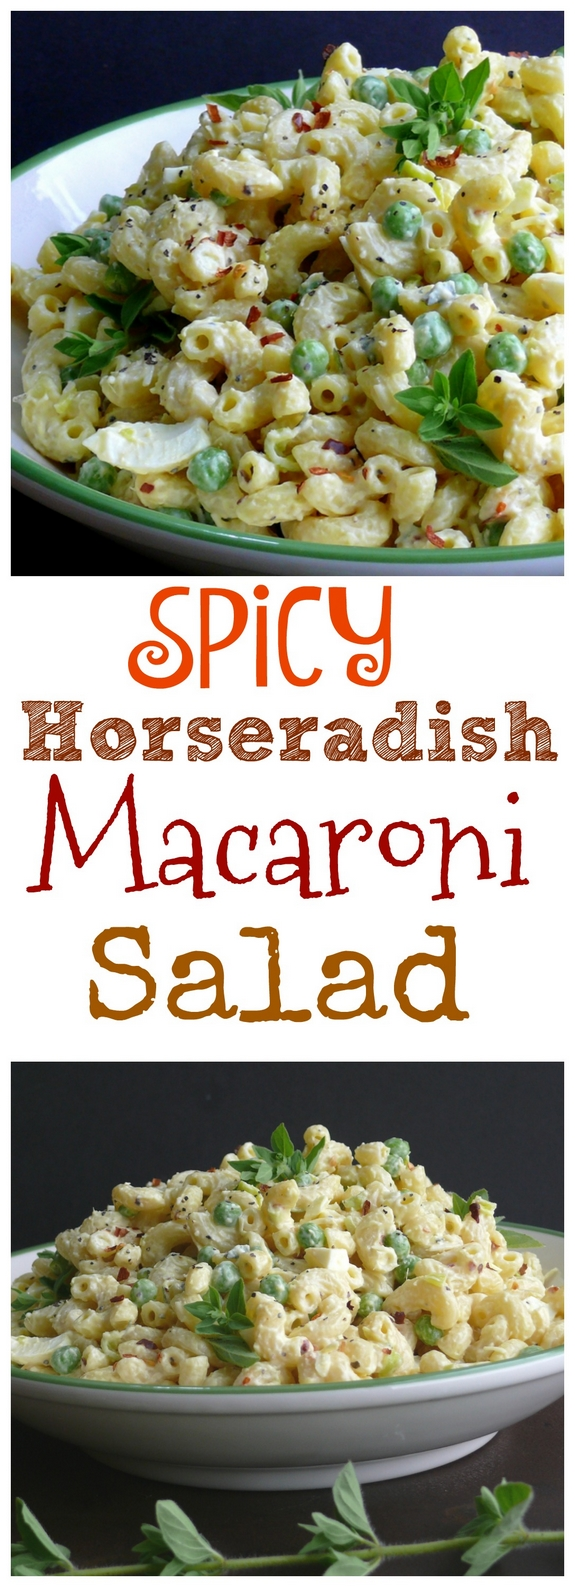 Spicy Horseradish Macaroni Salad + VIDEO | Noble Pig